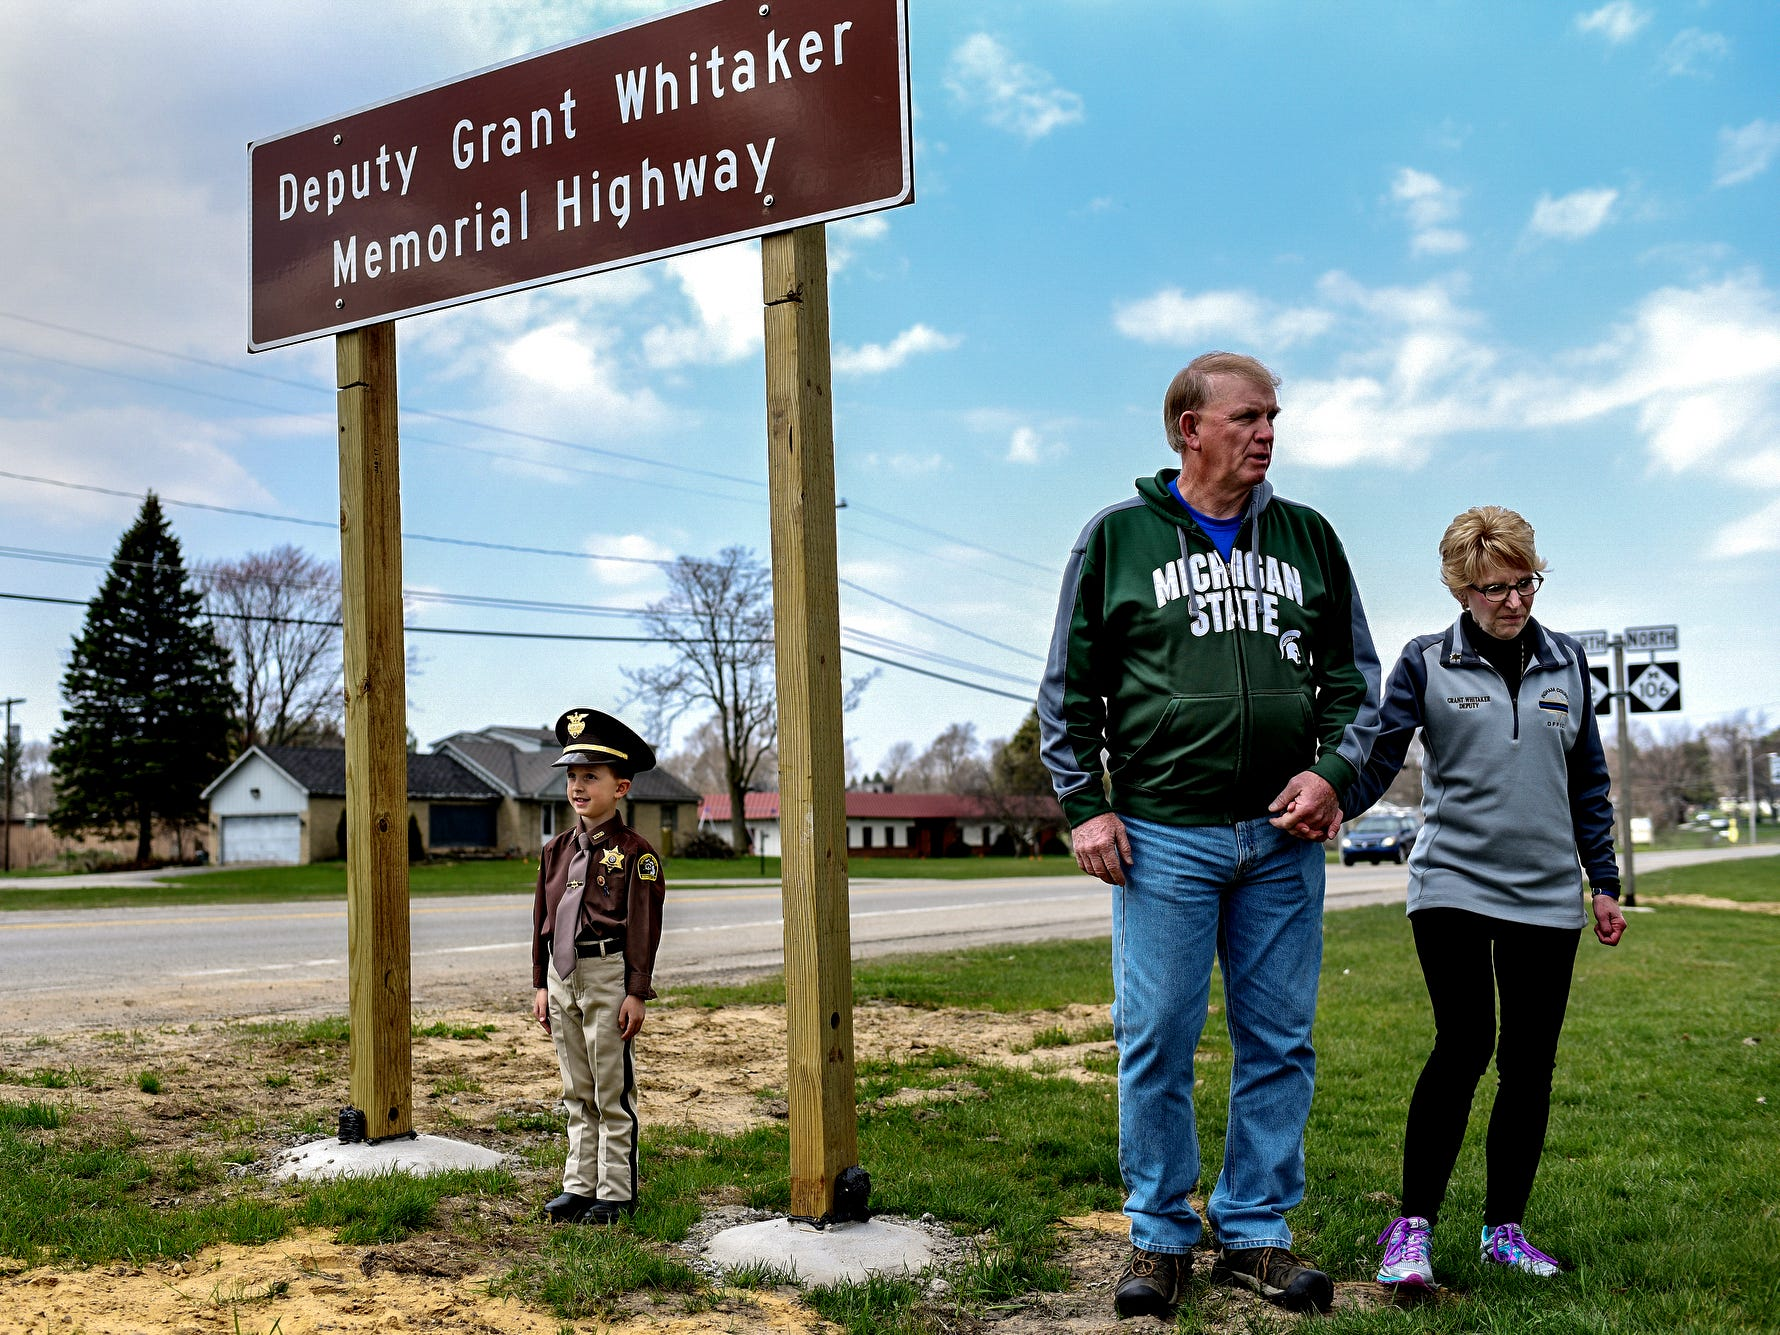 "Ingham County Sheriff's Deputy Grant Whitaker's nephew Henry Whitaker, 5, poses under a traffic sign honoring his late uncle while dressed as an Ingham County Sheriff's Department deputy as Deputy Grant Whitaker's parents Clyde, center, and Mary stand by after a ceremony unveiling the sigh that renames a portion of Highway M-52 in Stockbridge Township as ""Deputy Grant Whitaker Memorial Highway"" on Friday, April 27, 2018. Deputy Whitaker was killed in the line of duty after crashing during a high speed chase in December of 2014. Ingham County Sheriff Scott Wriggelsworth also commemorated the event by renaming April 27th as ""Deputy Whitaker Day"" in his honor."